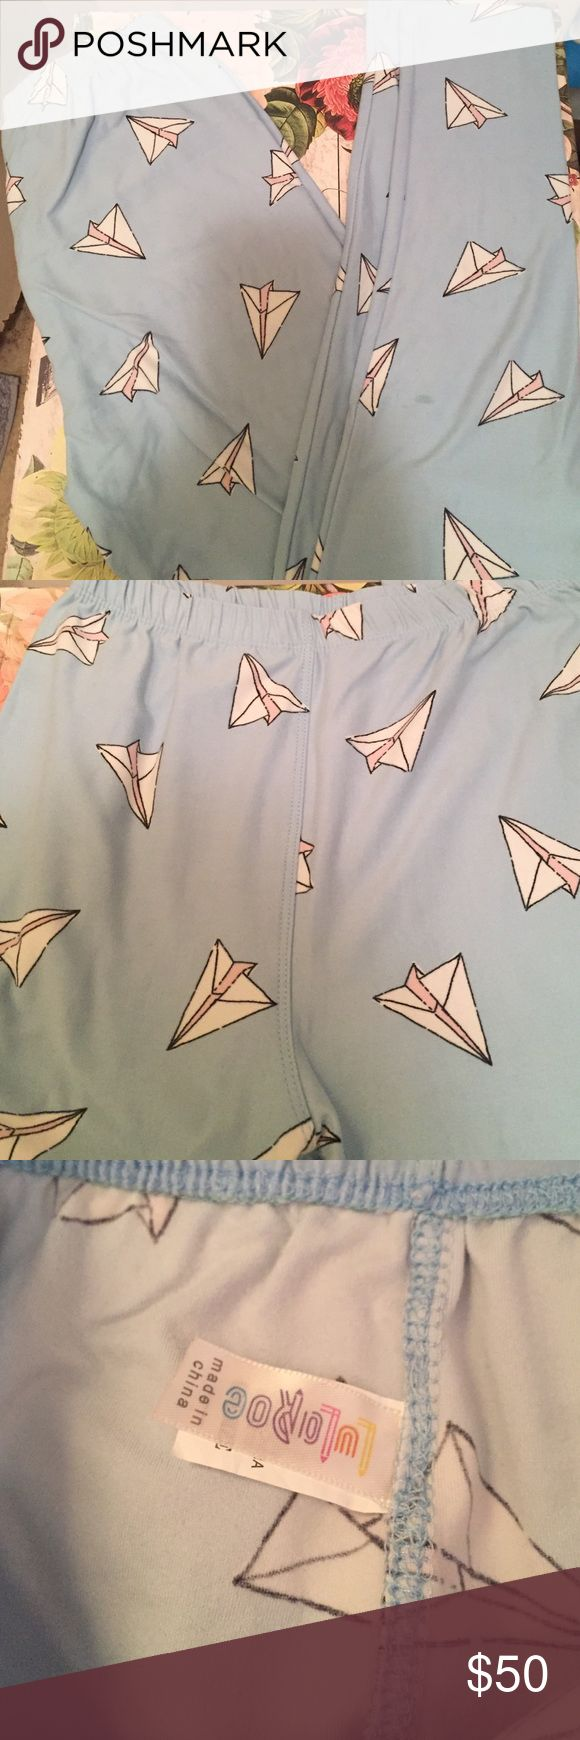 LulaRoe OS paper airplane leggings EUC, made in China, work and washed maybe twice? For sure once! Super soft! Crotch shot in last picture. Super soft! Vintage pair due to elastic waistband! Fun print! LuLaRoe Pants Leggings